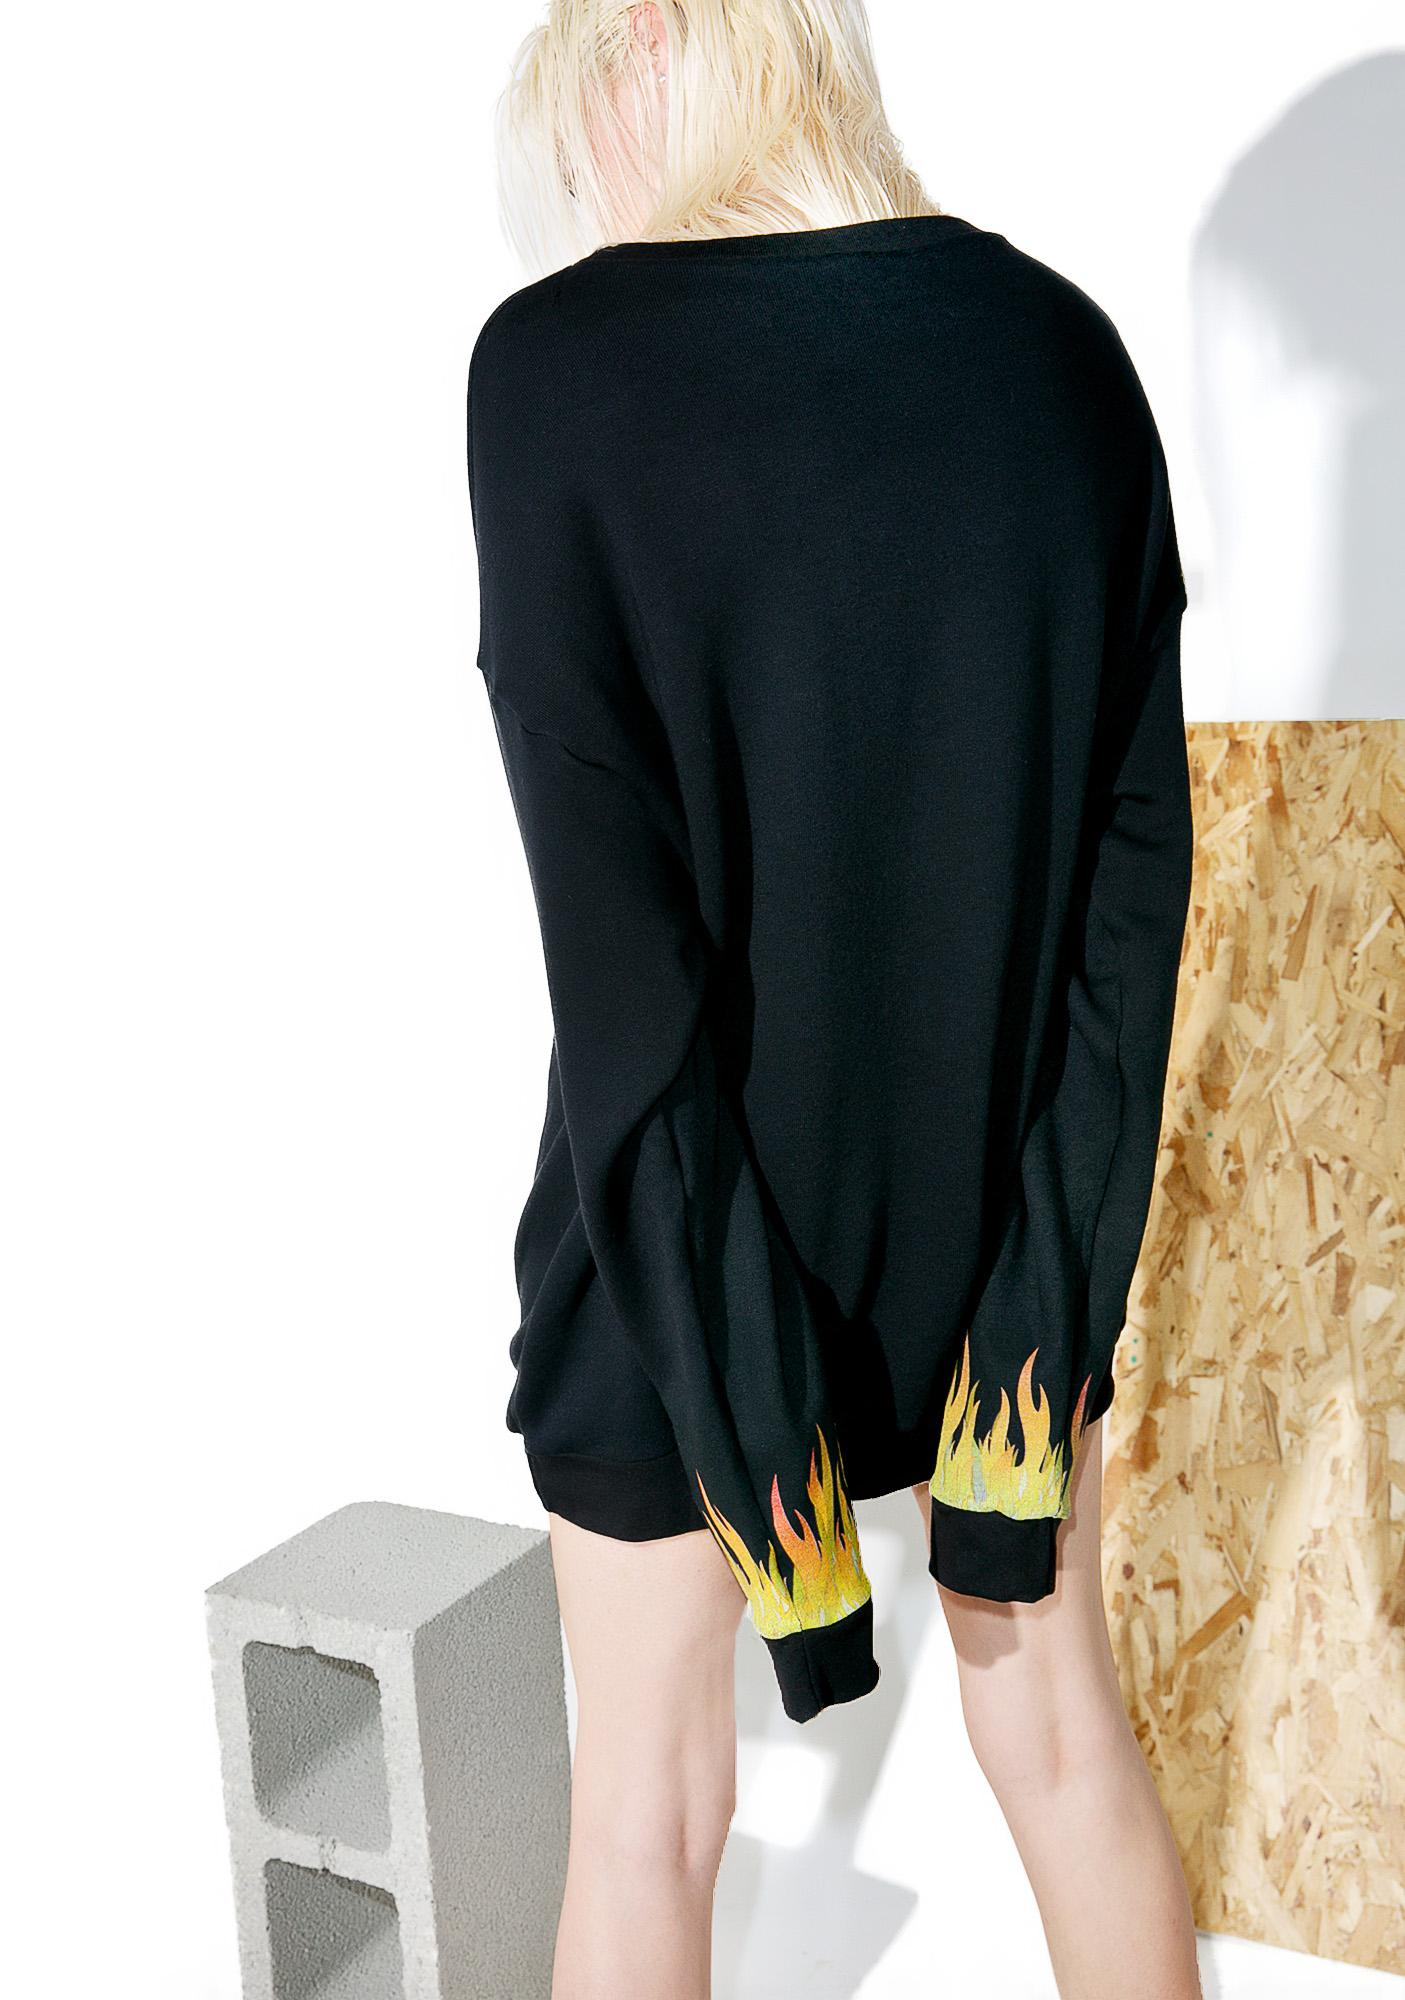 Hardware LDN Flame Sweatshirt